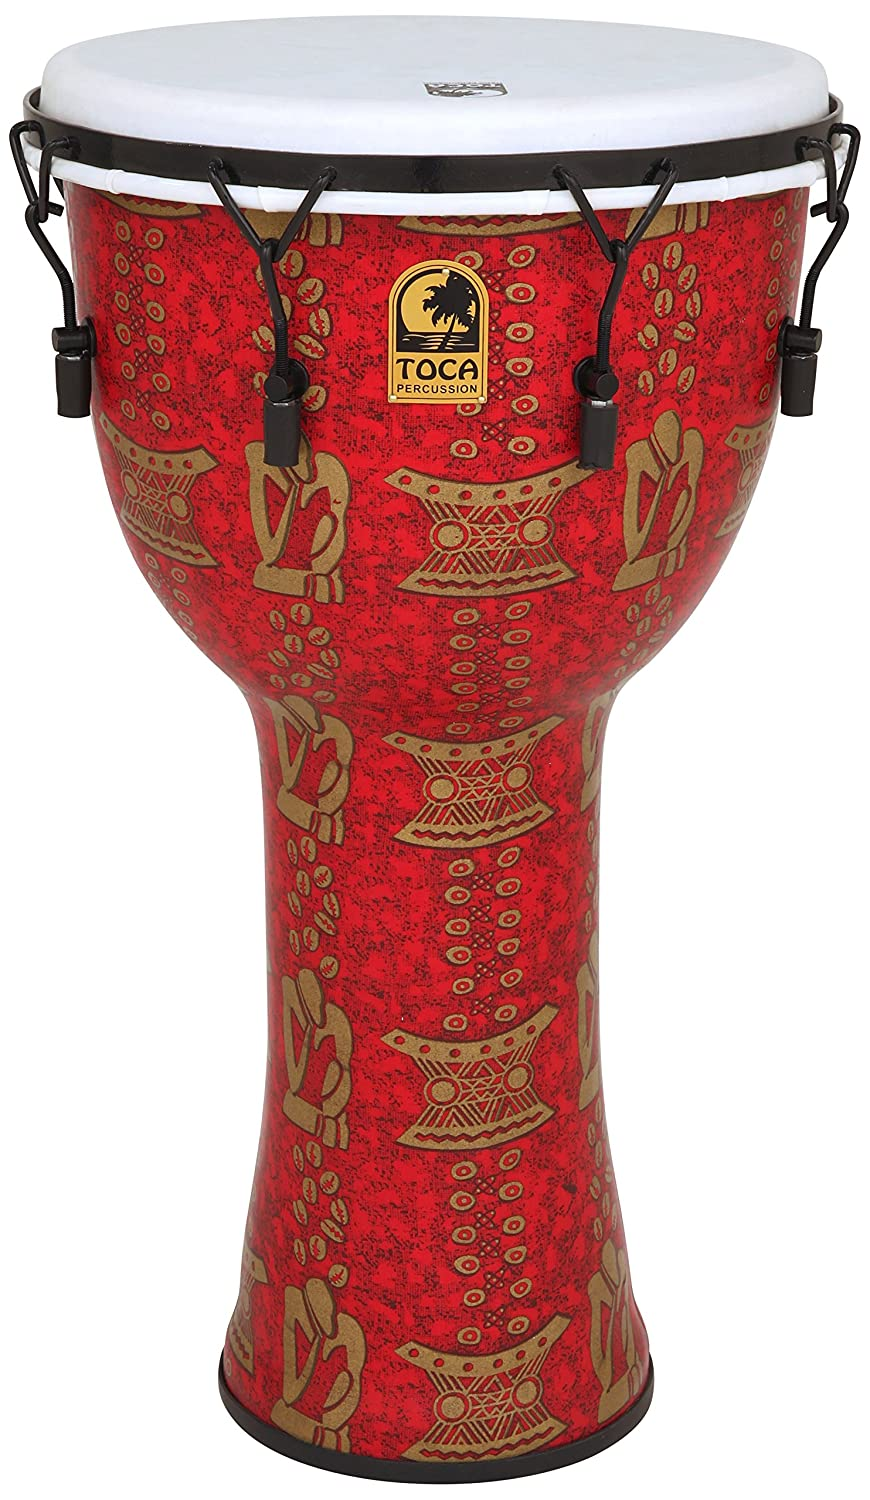 Toca TF2DM-14TB FreeStyle II 14-Inch Mechanically Tuned Djembe with Bag, Thinker by Toca   B00MI2L46M